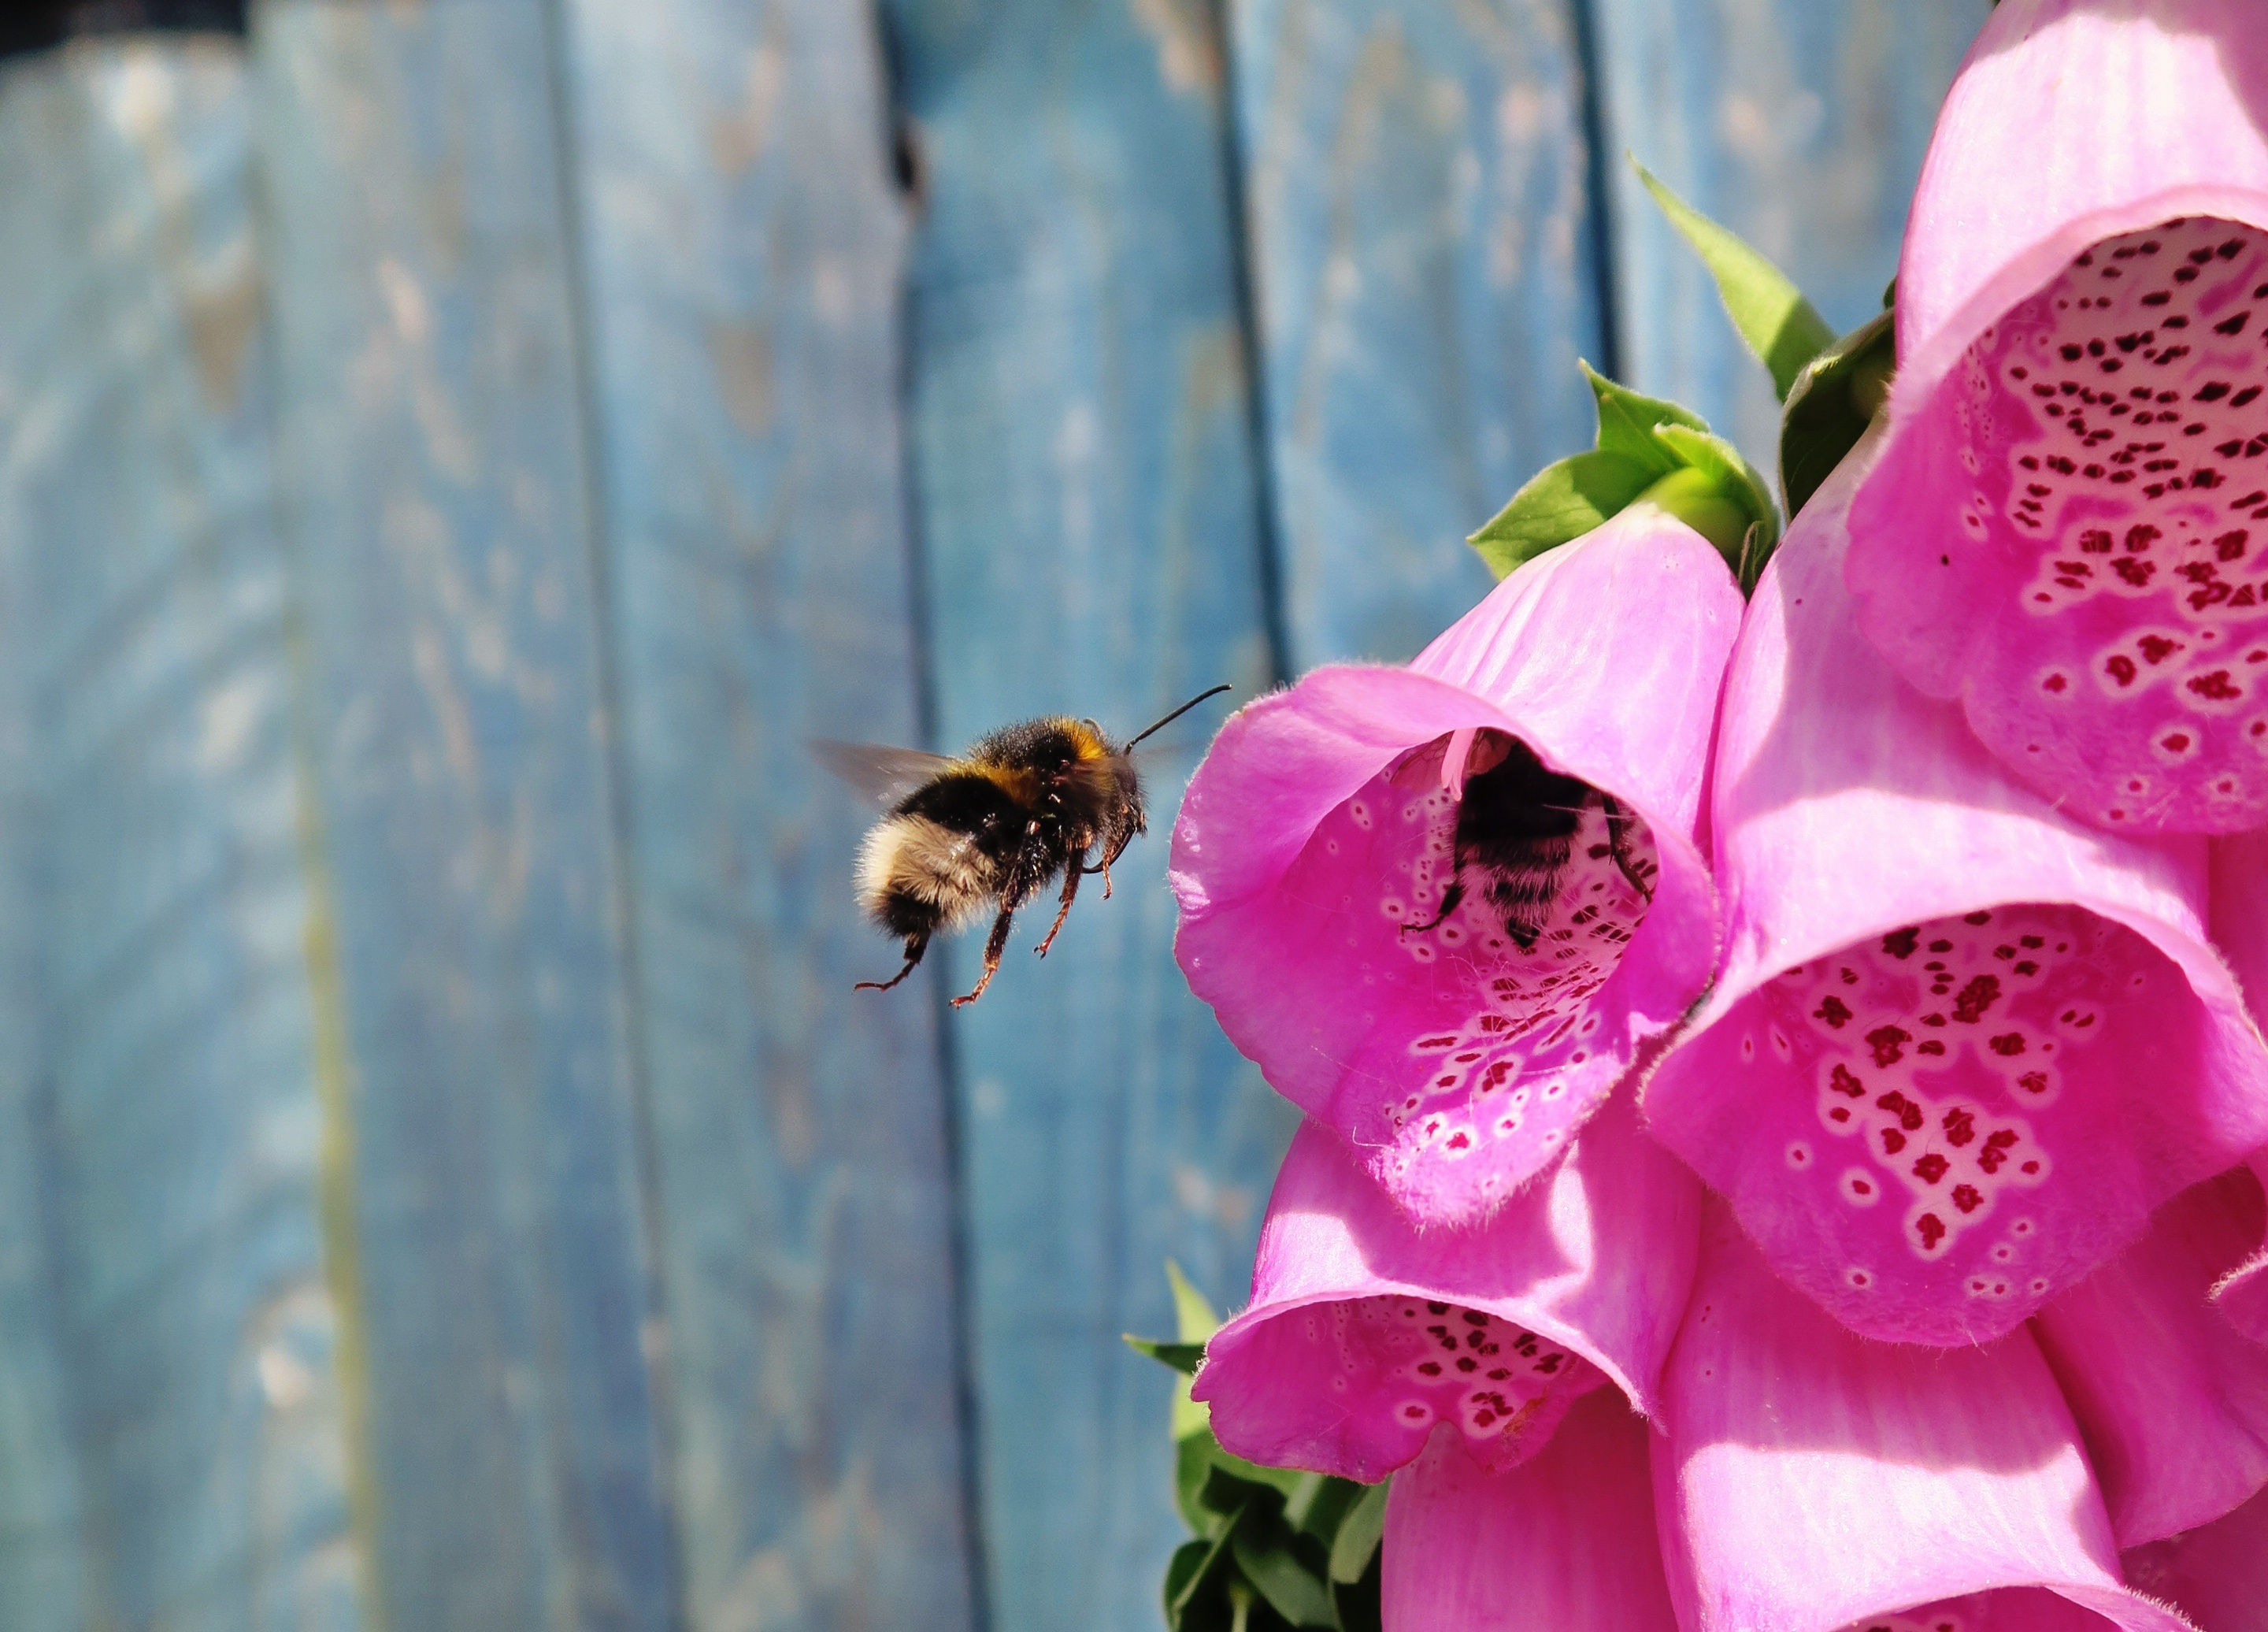 AIR POLLUTION DAMAGES BEES